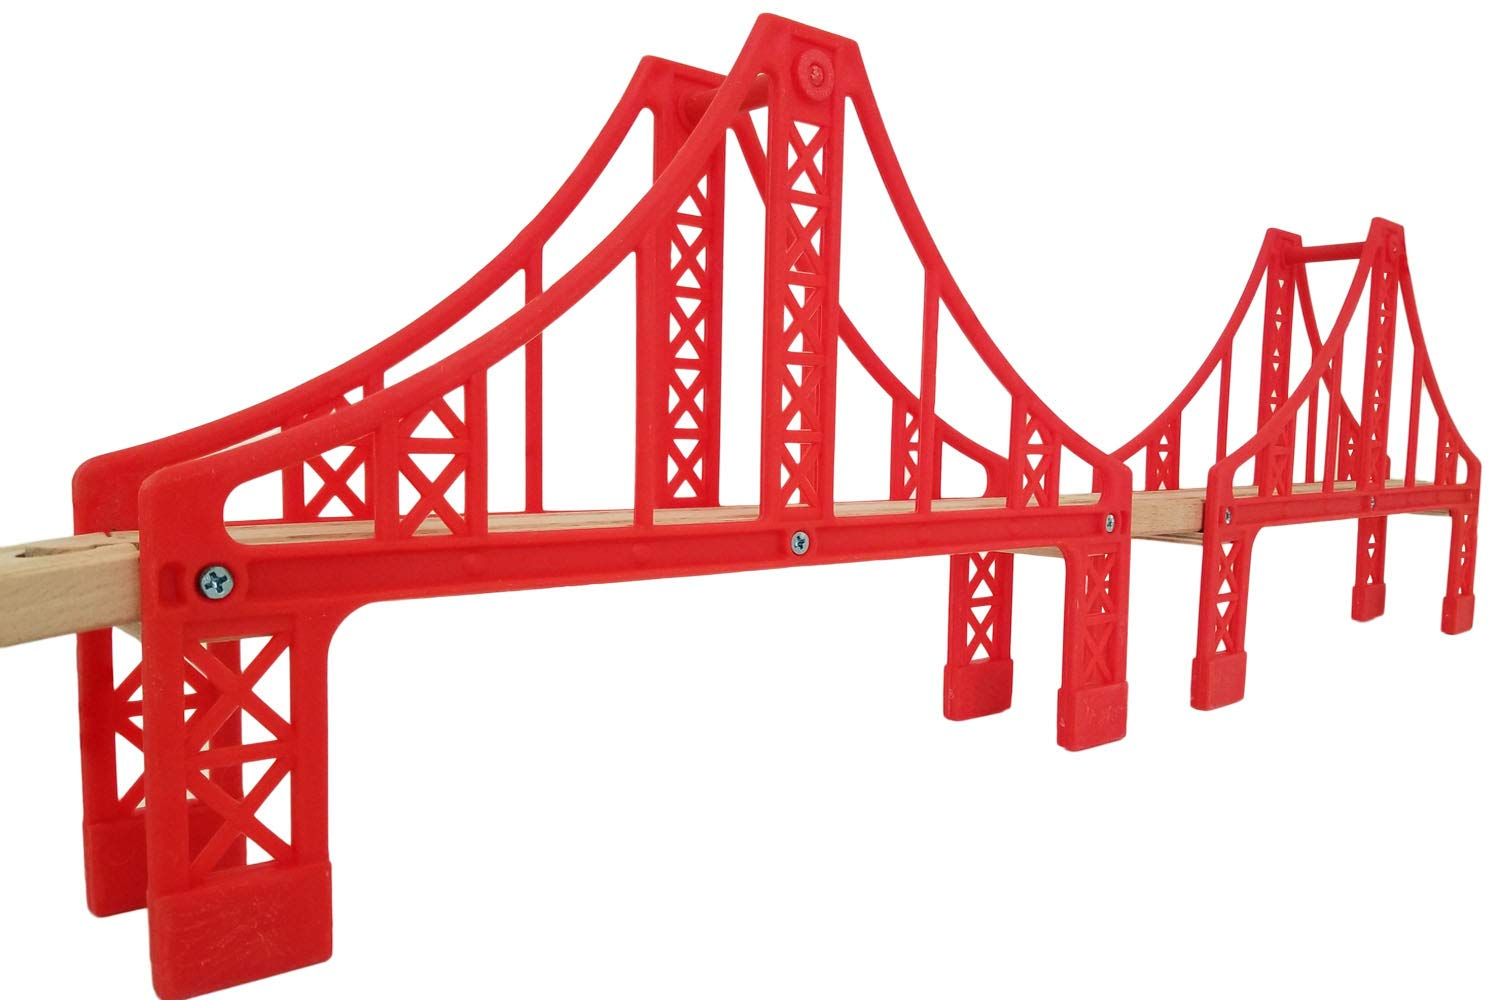 Flash Sale | Double Suspension Bridge - Deluxe Wooden Toy Accessories for Kids Toddler Boys Girls - Compatible with Thomas Trains Railway, Brio Tracks, and Major Brands. 2X Red Bridges ToysOpoly